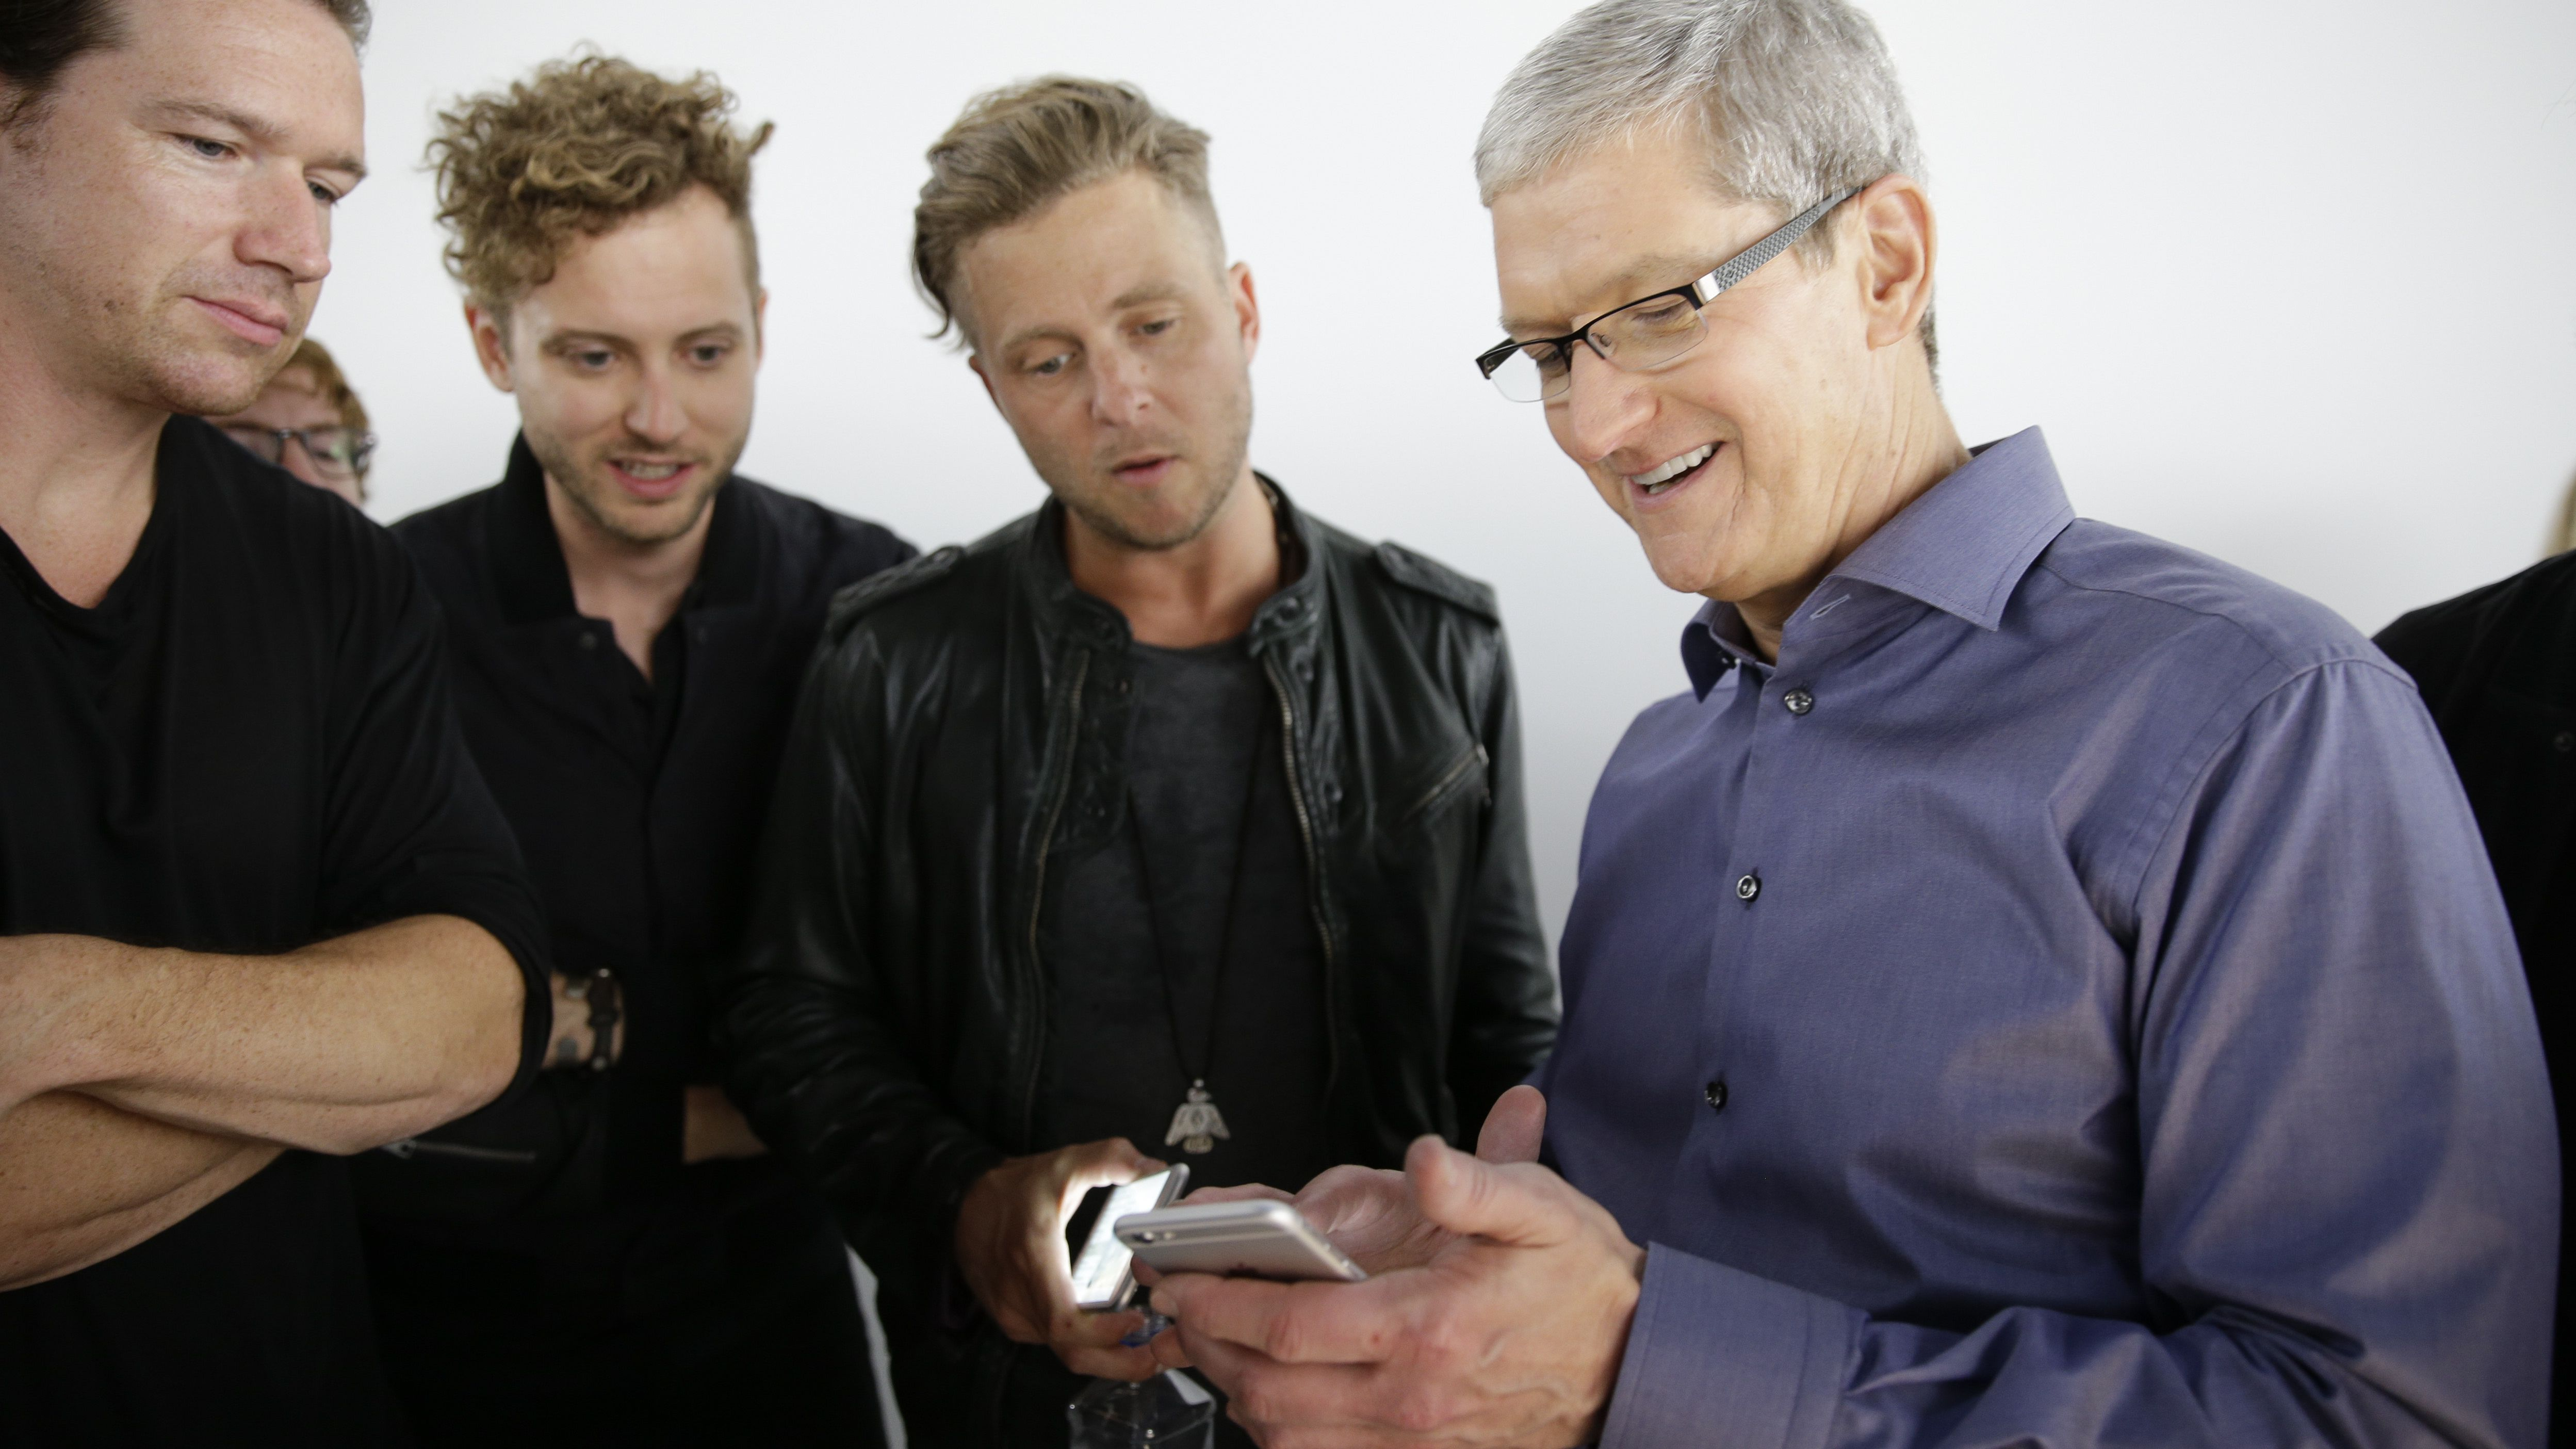 Apple CEO Tim Cook, right, looks at the new iPhone 6s with the members of OneRepublic, in the demo room after Apple event at the Bill Graham Civic Auditorium in San Francisco, Wednesday, Sept. 9, 2015. (AP Photo/Eric Risberg)